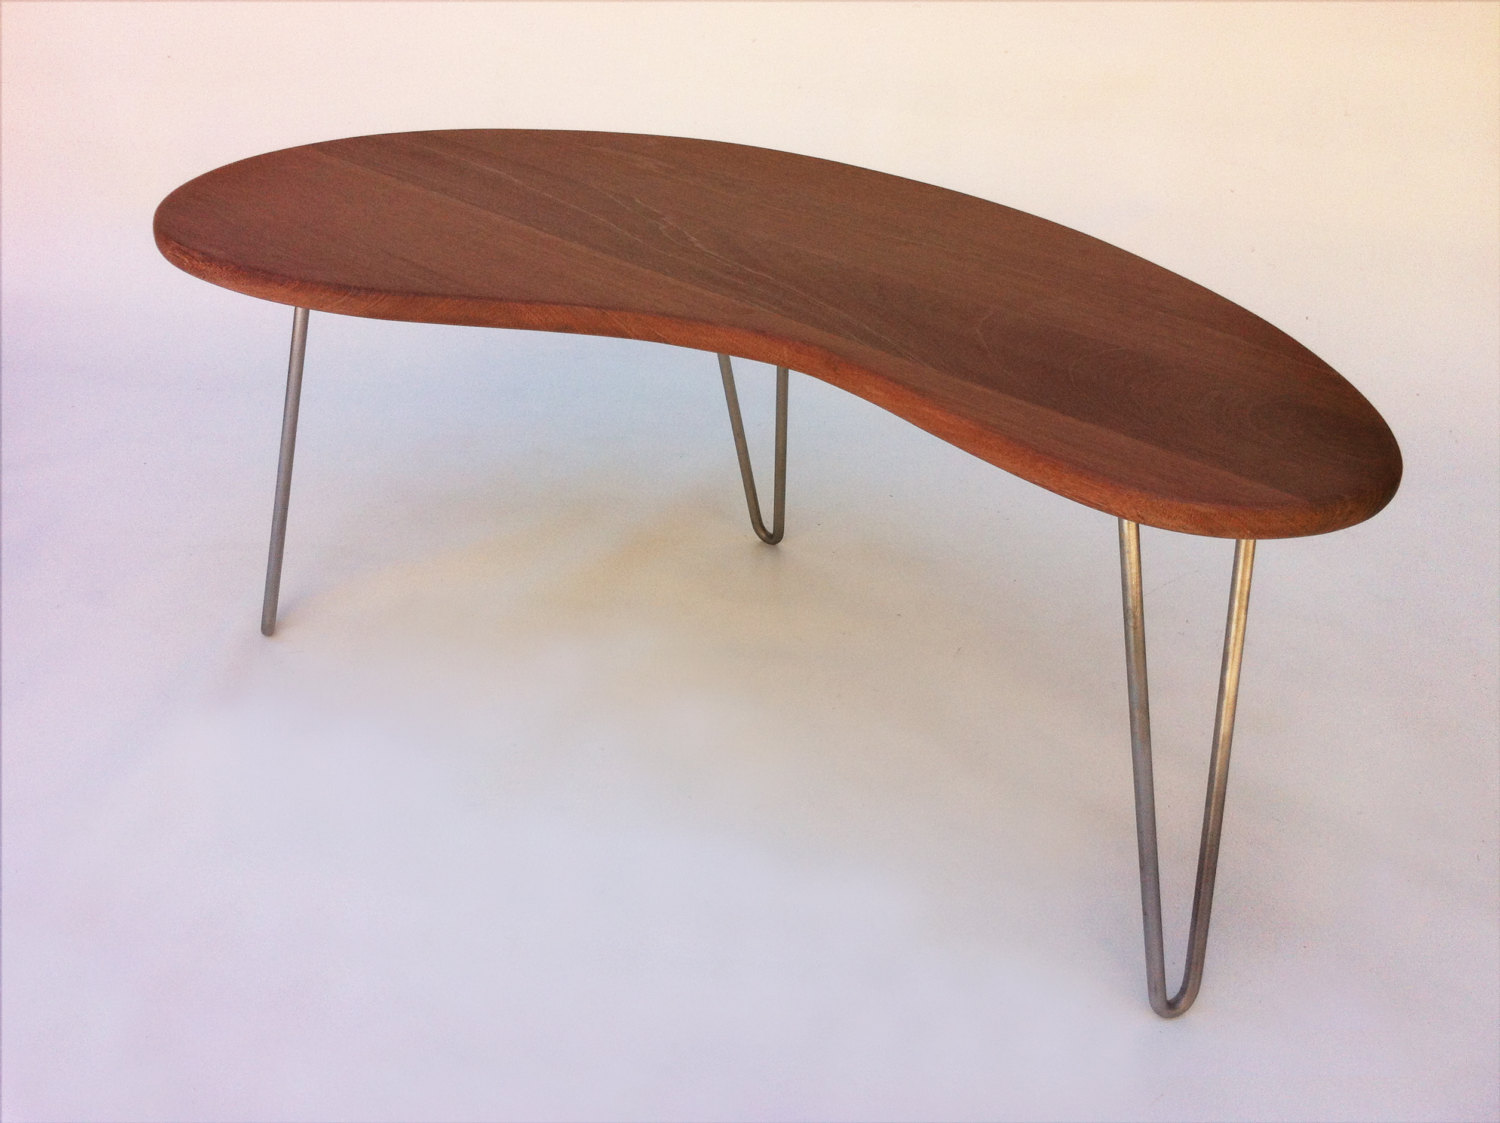 Outdoor Ipe Mid Century Modern Coffee Or Tail Table Kidney Bean Shaped Bbq Side